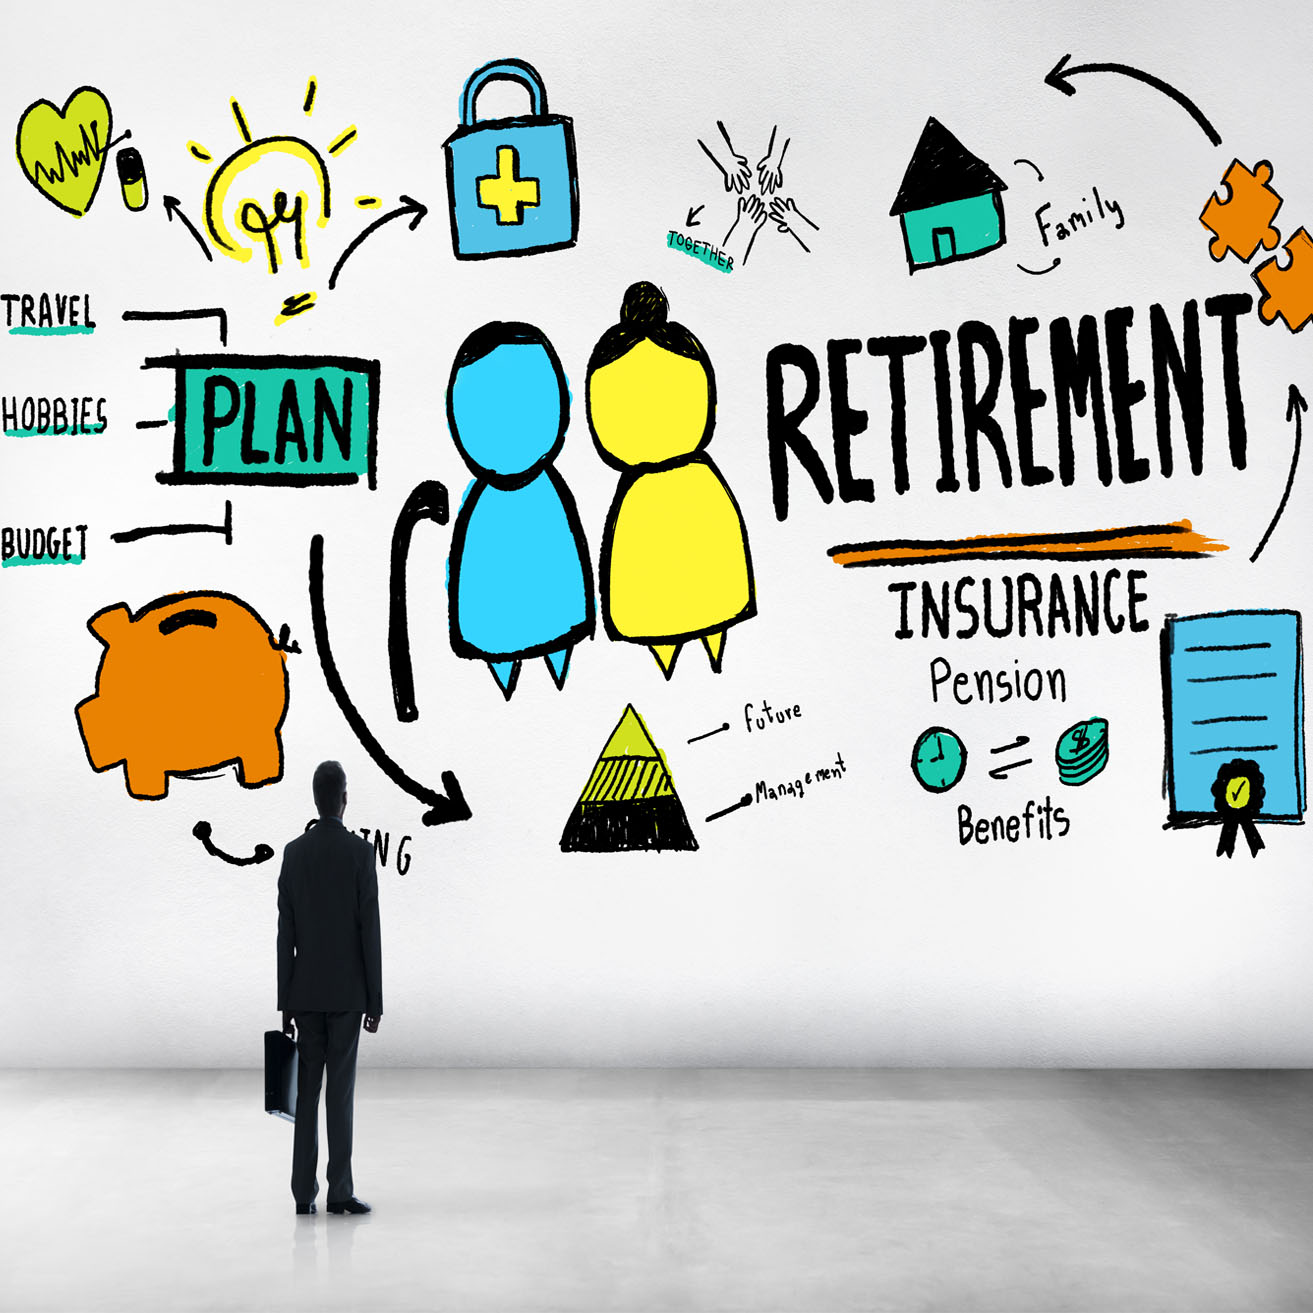 RRSP Focus - Q&A with our Certified Financial Planner